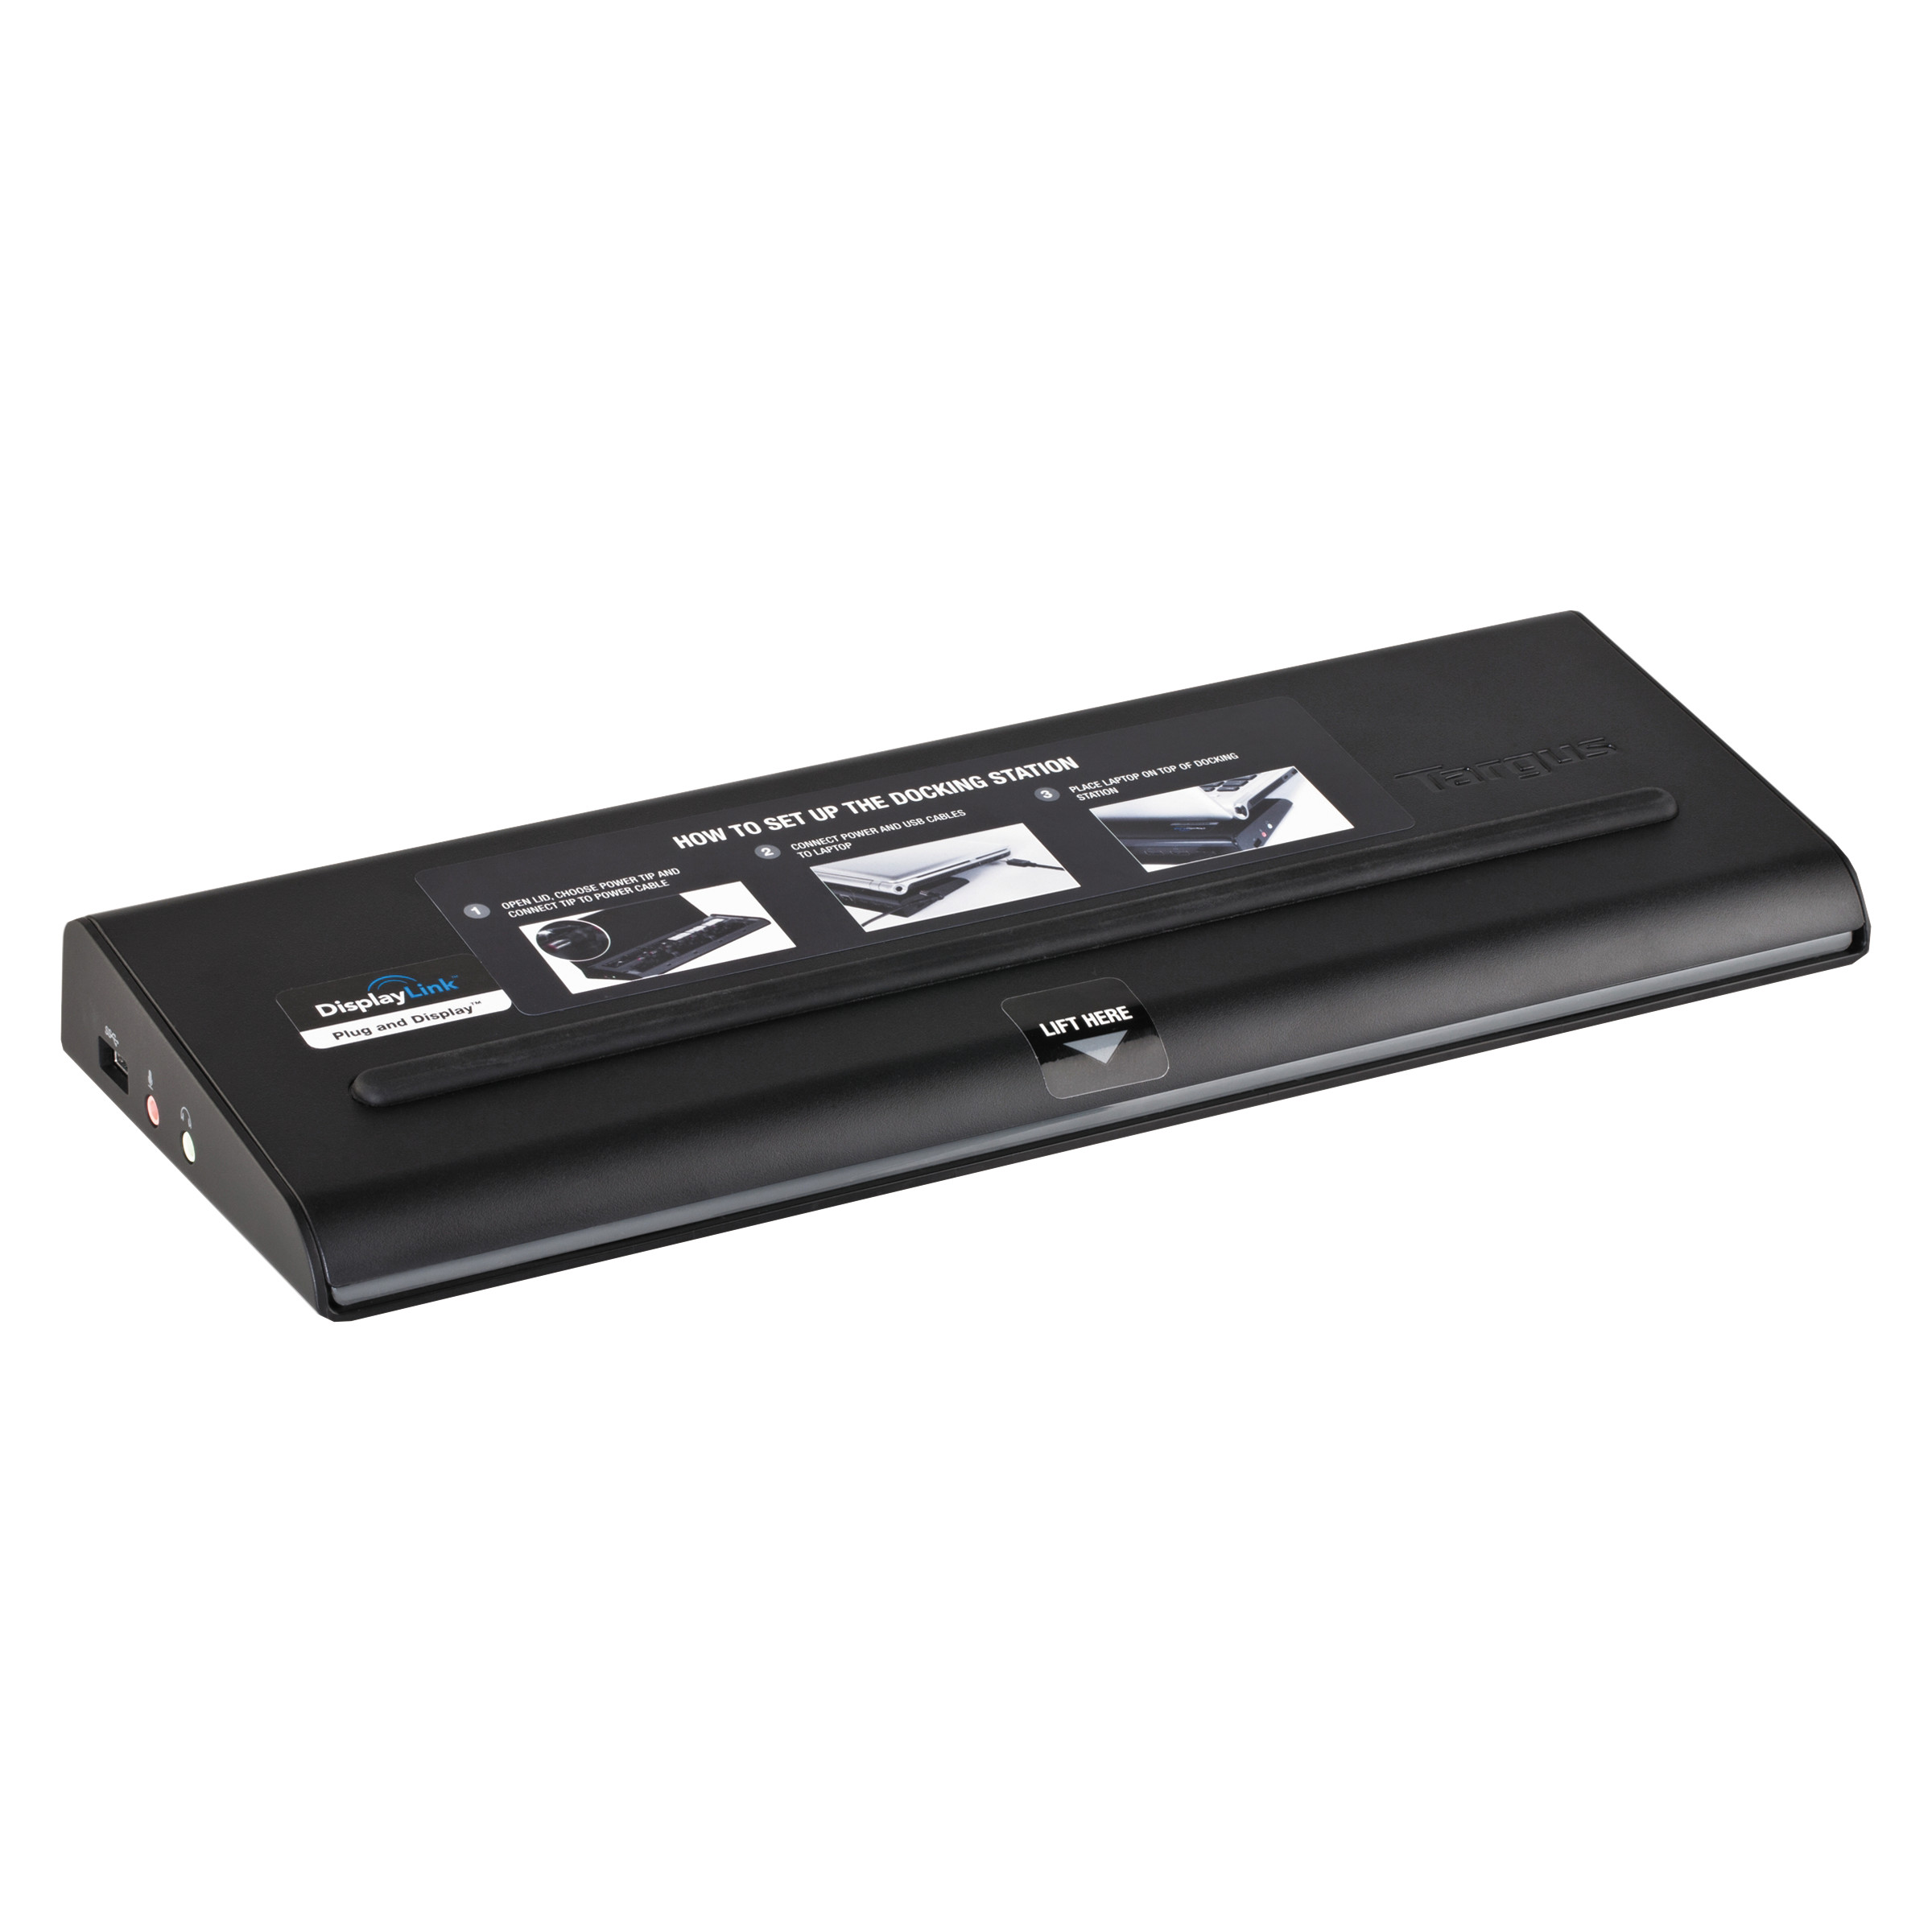 Targus Universal USB 3.0 DV2K Docking Station with Power by Targus